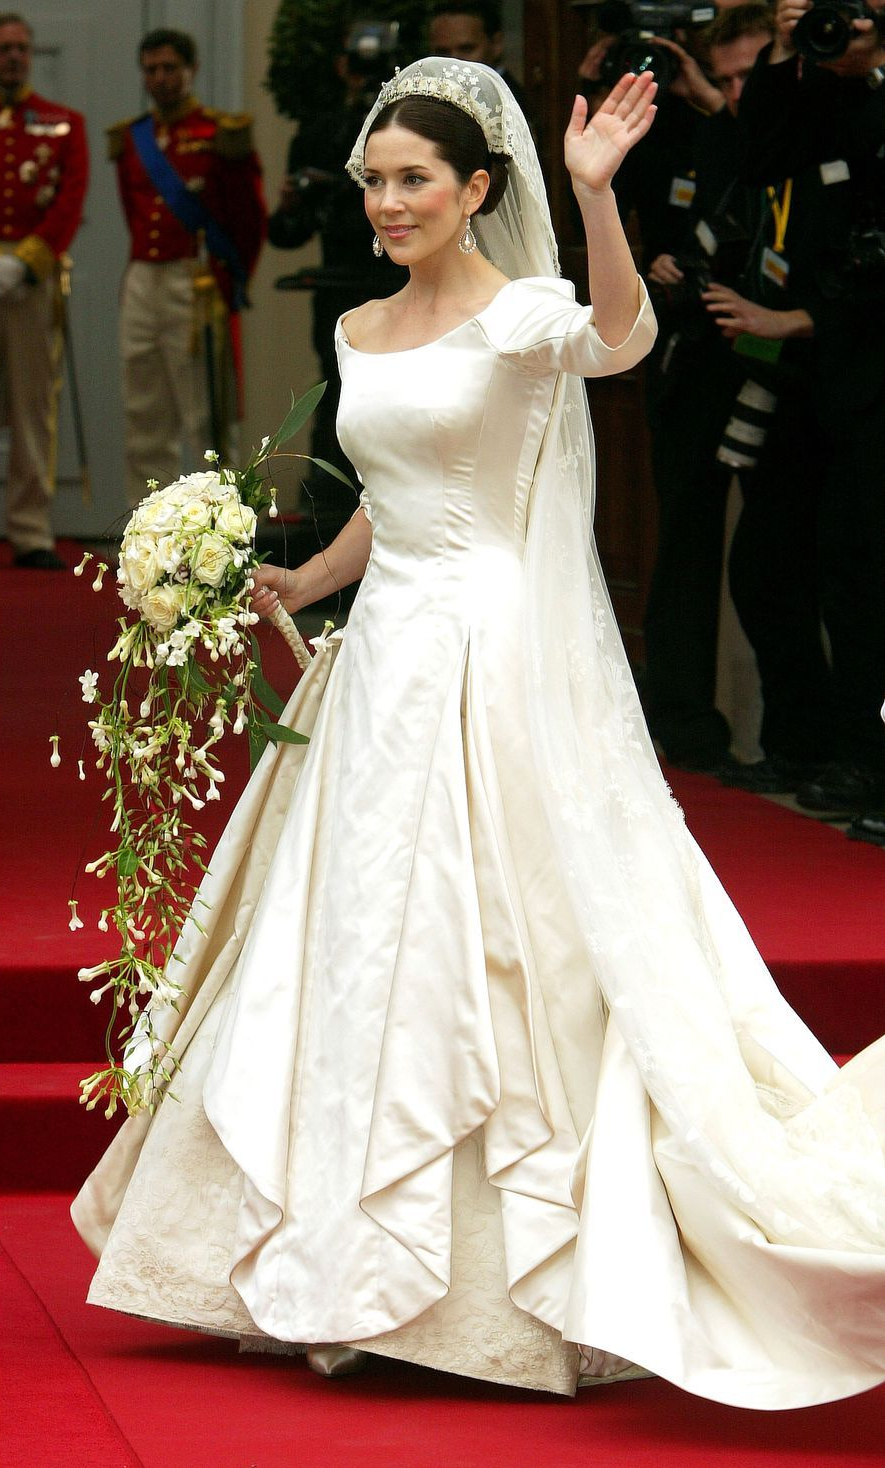 1437675324-hbz-royal-weddings-2004-mary-donaldson-prince-frederik-denmark-gettyimages-50836542